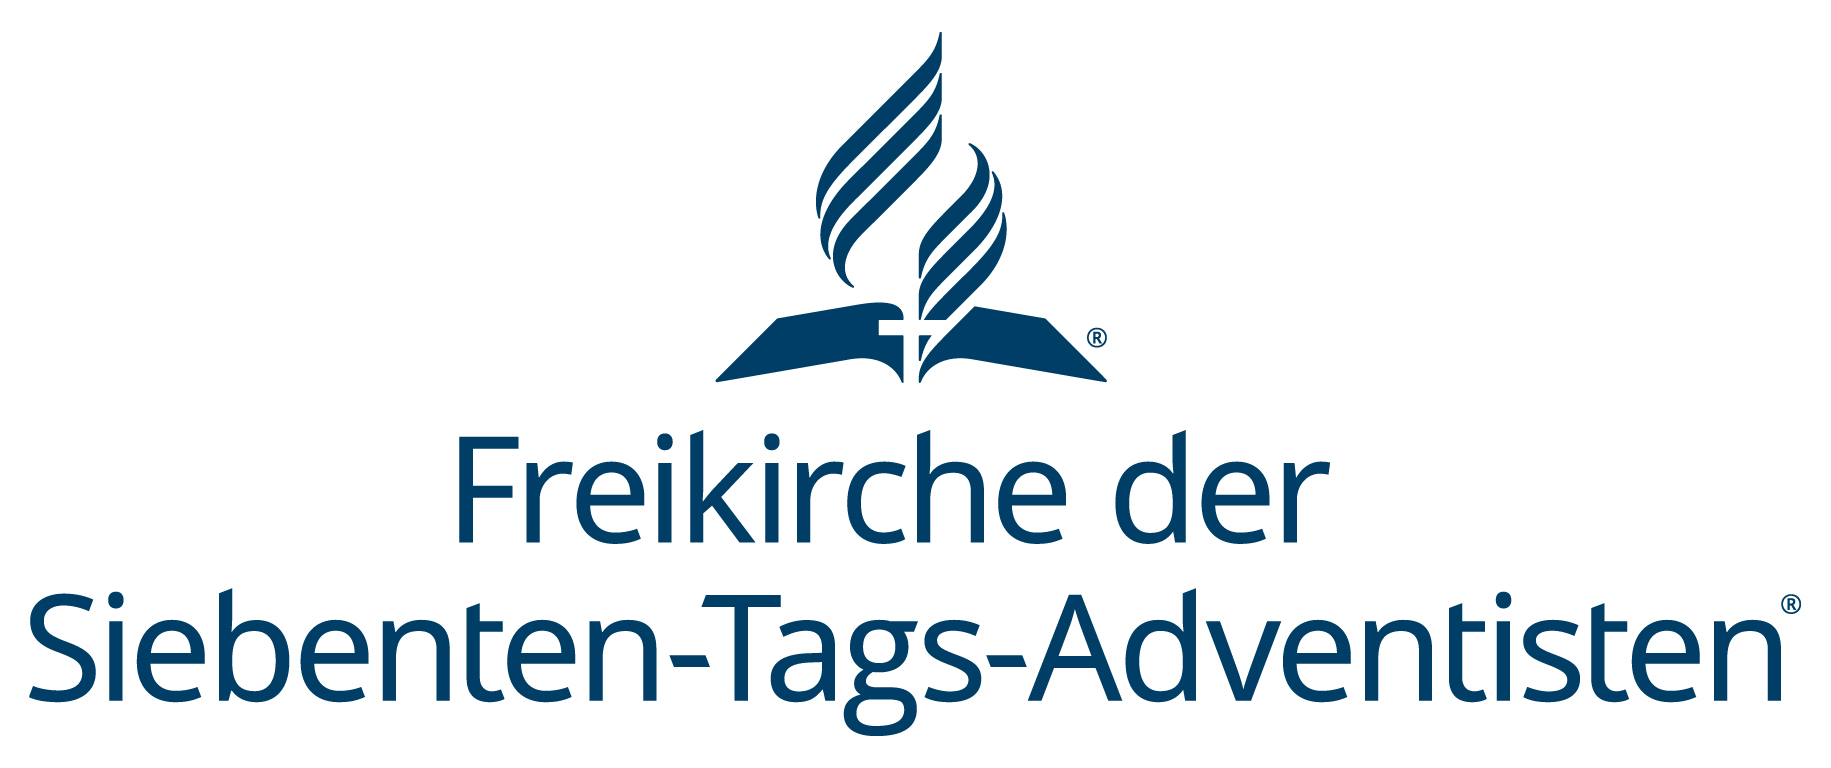 Siebenten-Tags-Adventisten in Deutschland